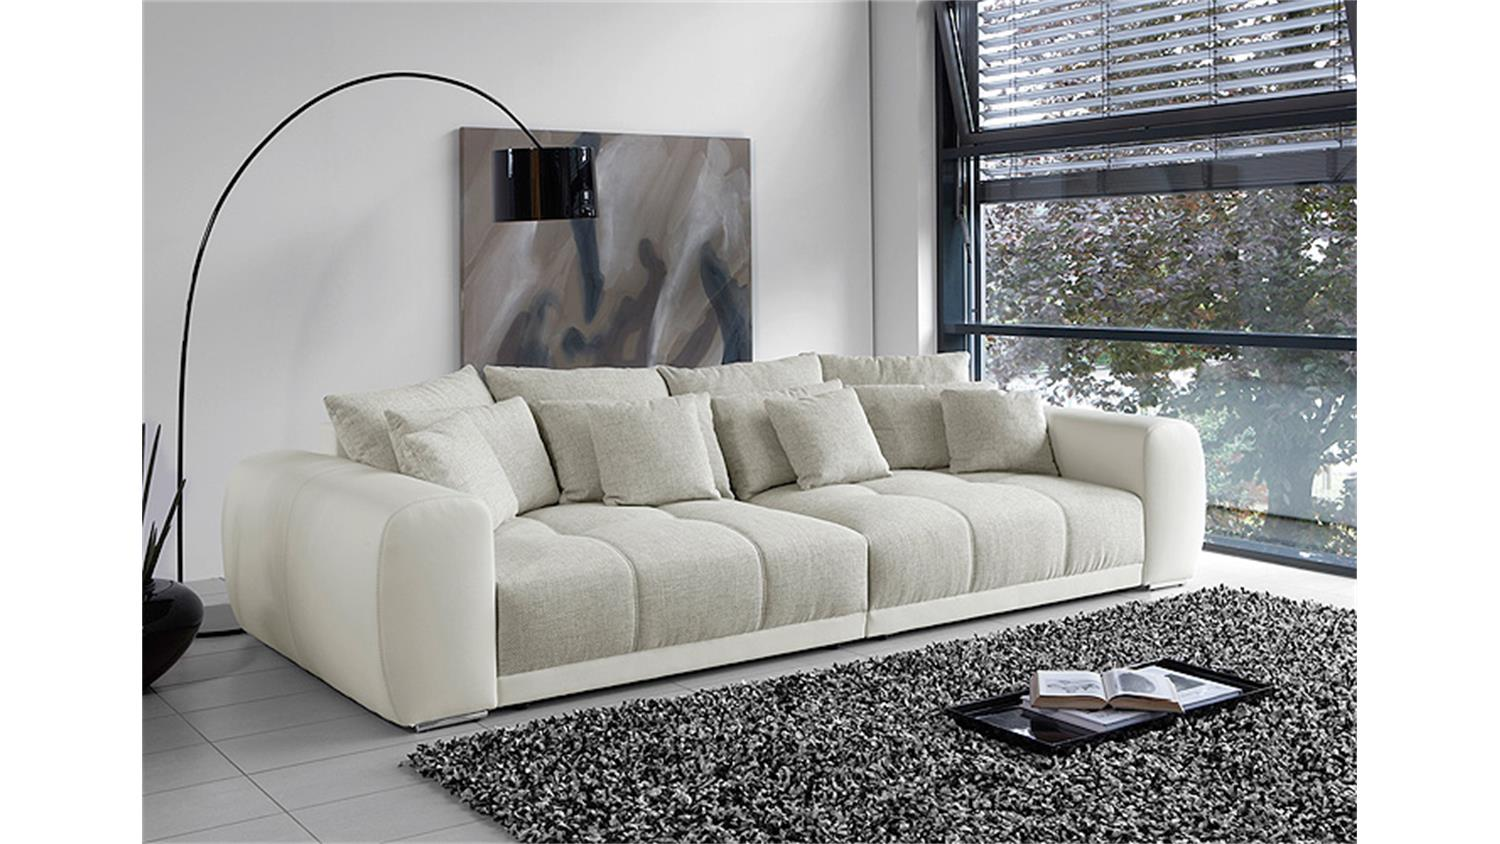 Big Sofa Sam Polstermobel Xxl Sofa In Weiss Grau Beige 310